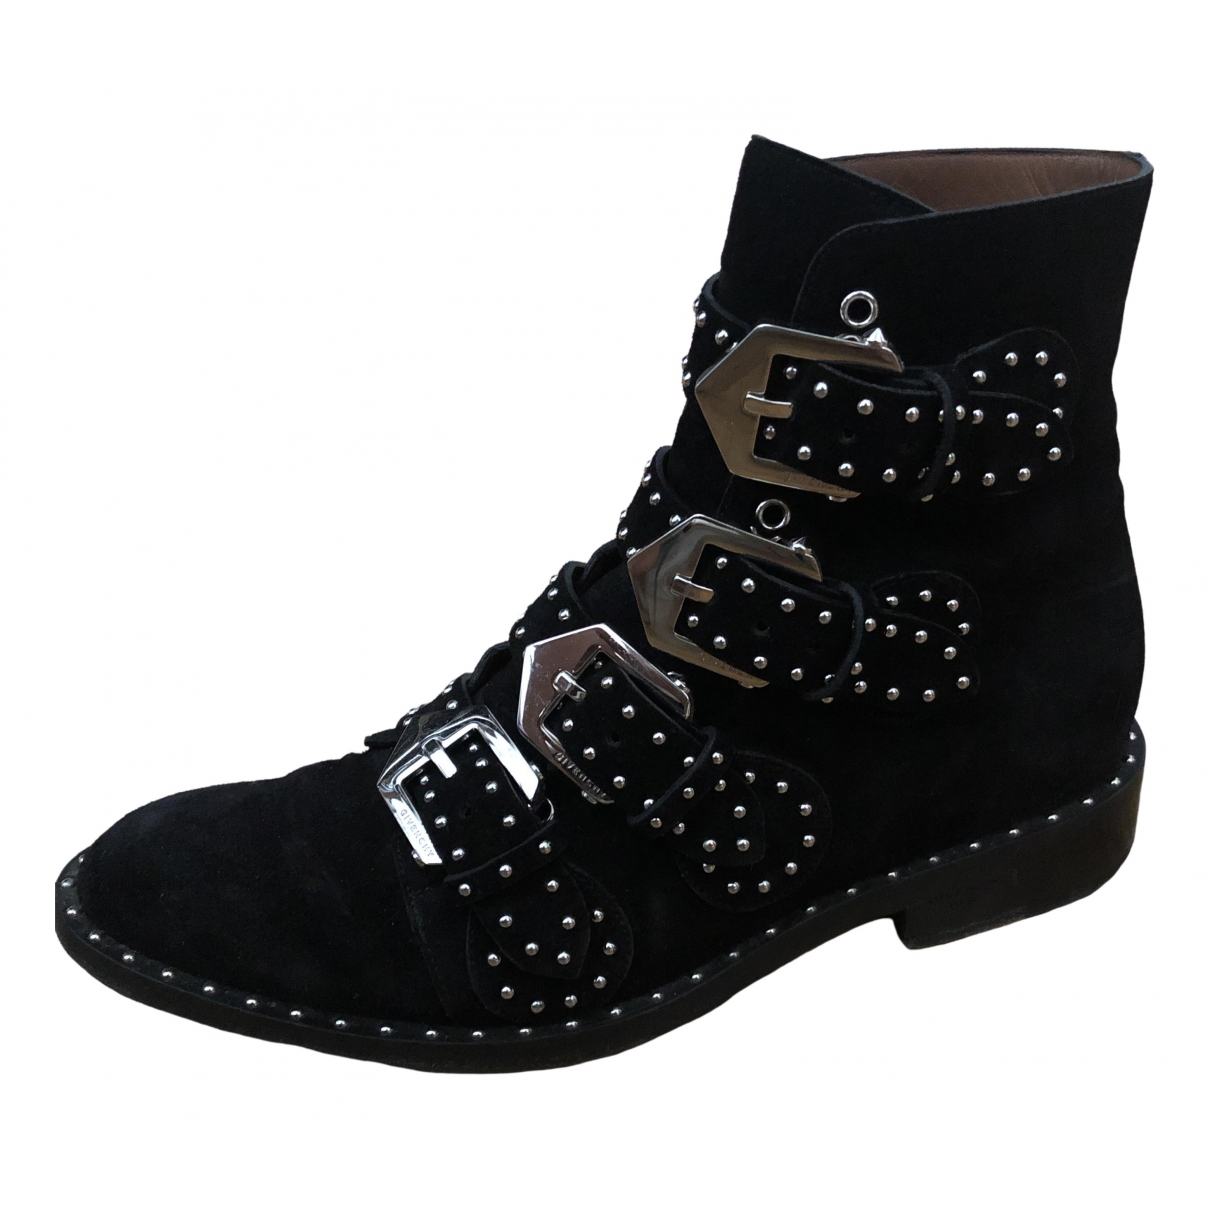 Givenchy \N Black Suede Ankle boots for Women 37 EU